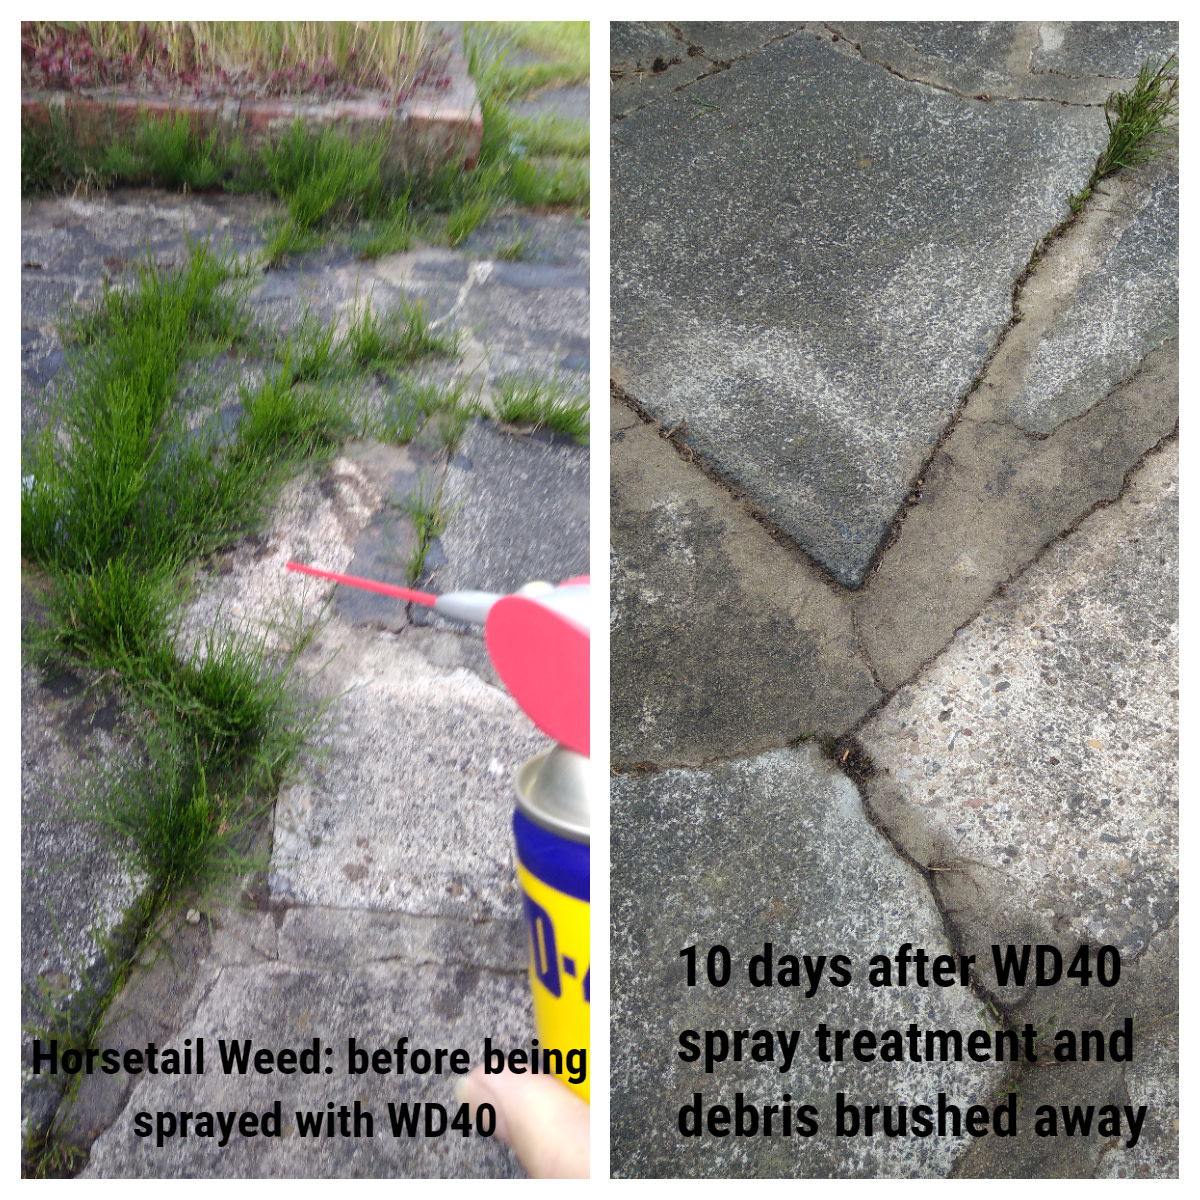 Part of my Patio before spraying with WD40, and then ten days later after brushing away the debris. An impressive start, although a small piece of the horsetail weed remains (top right). The real test will be if this invasive weed re-appears.